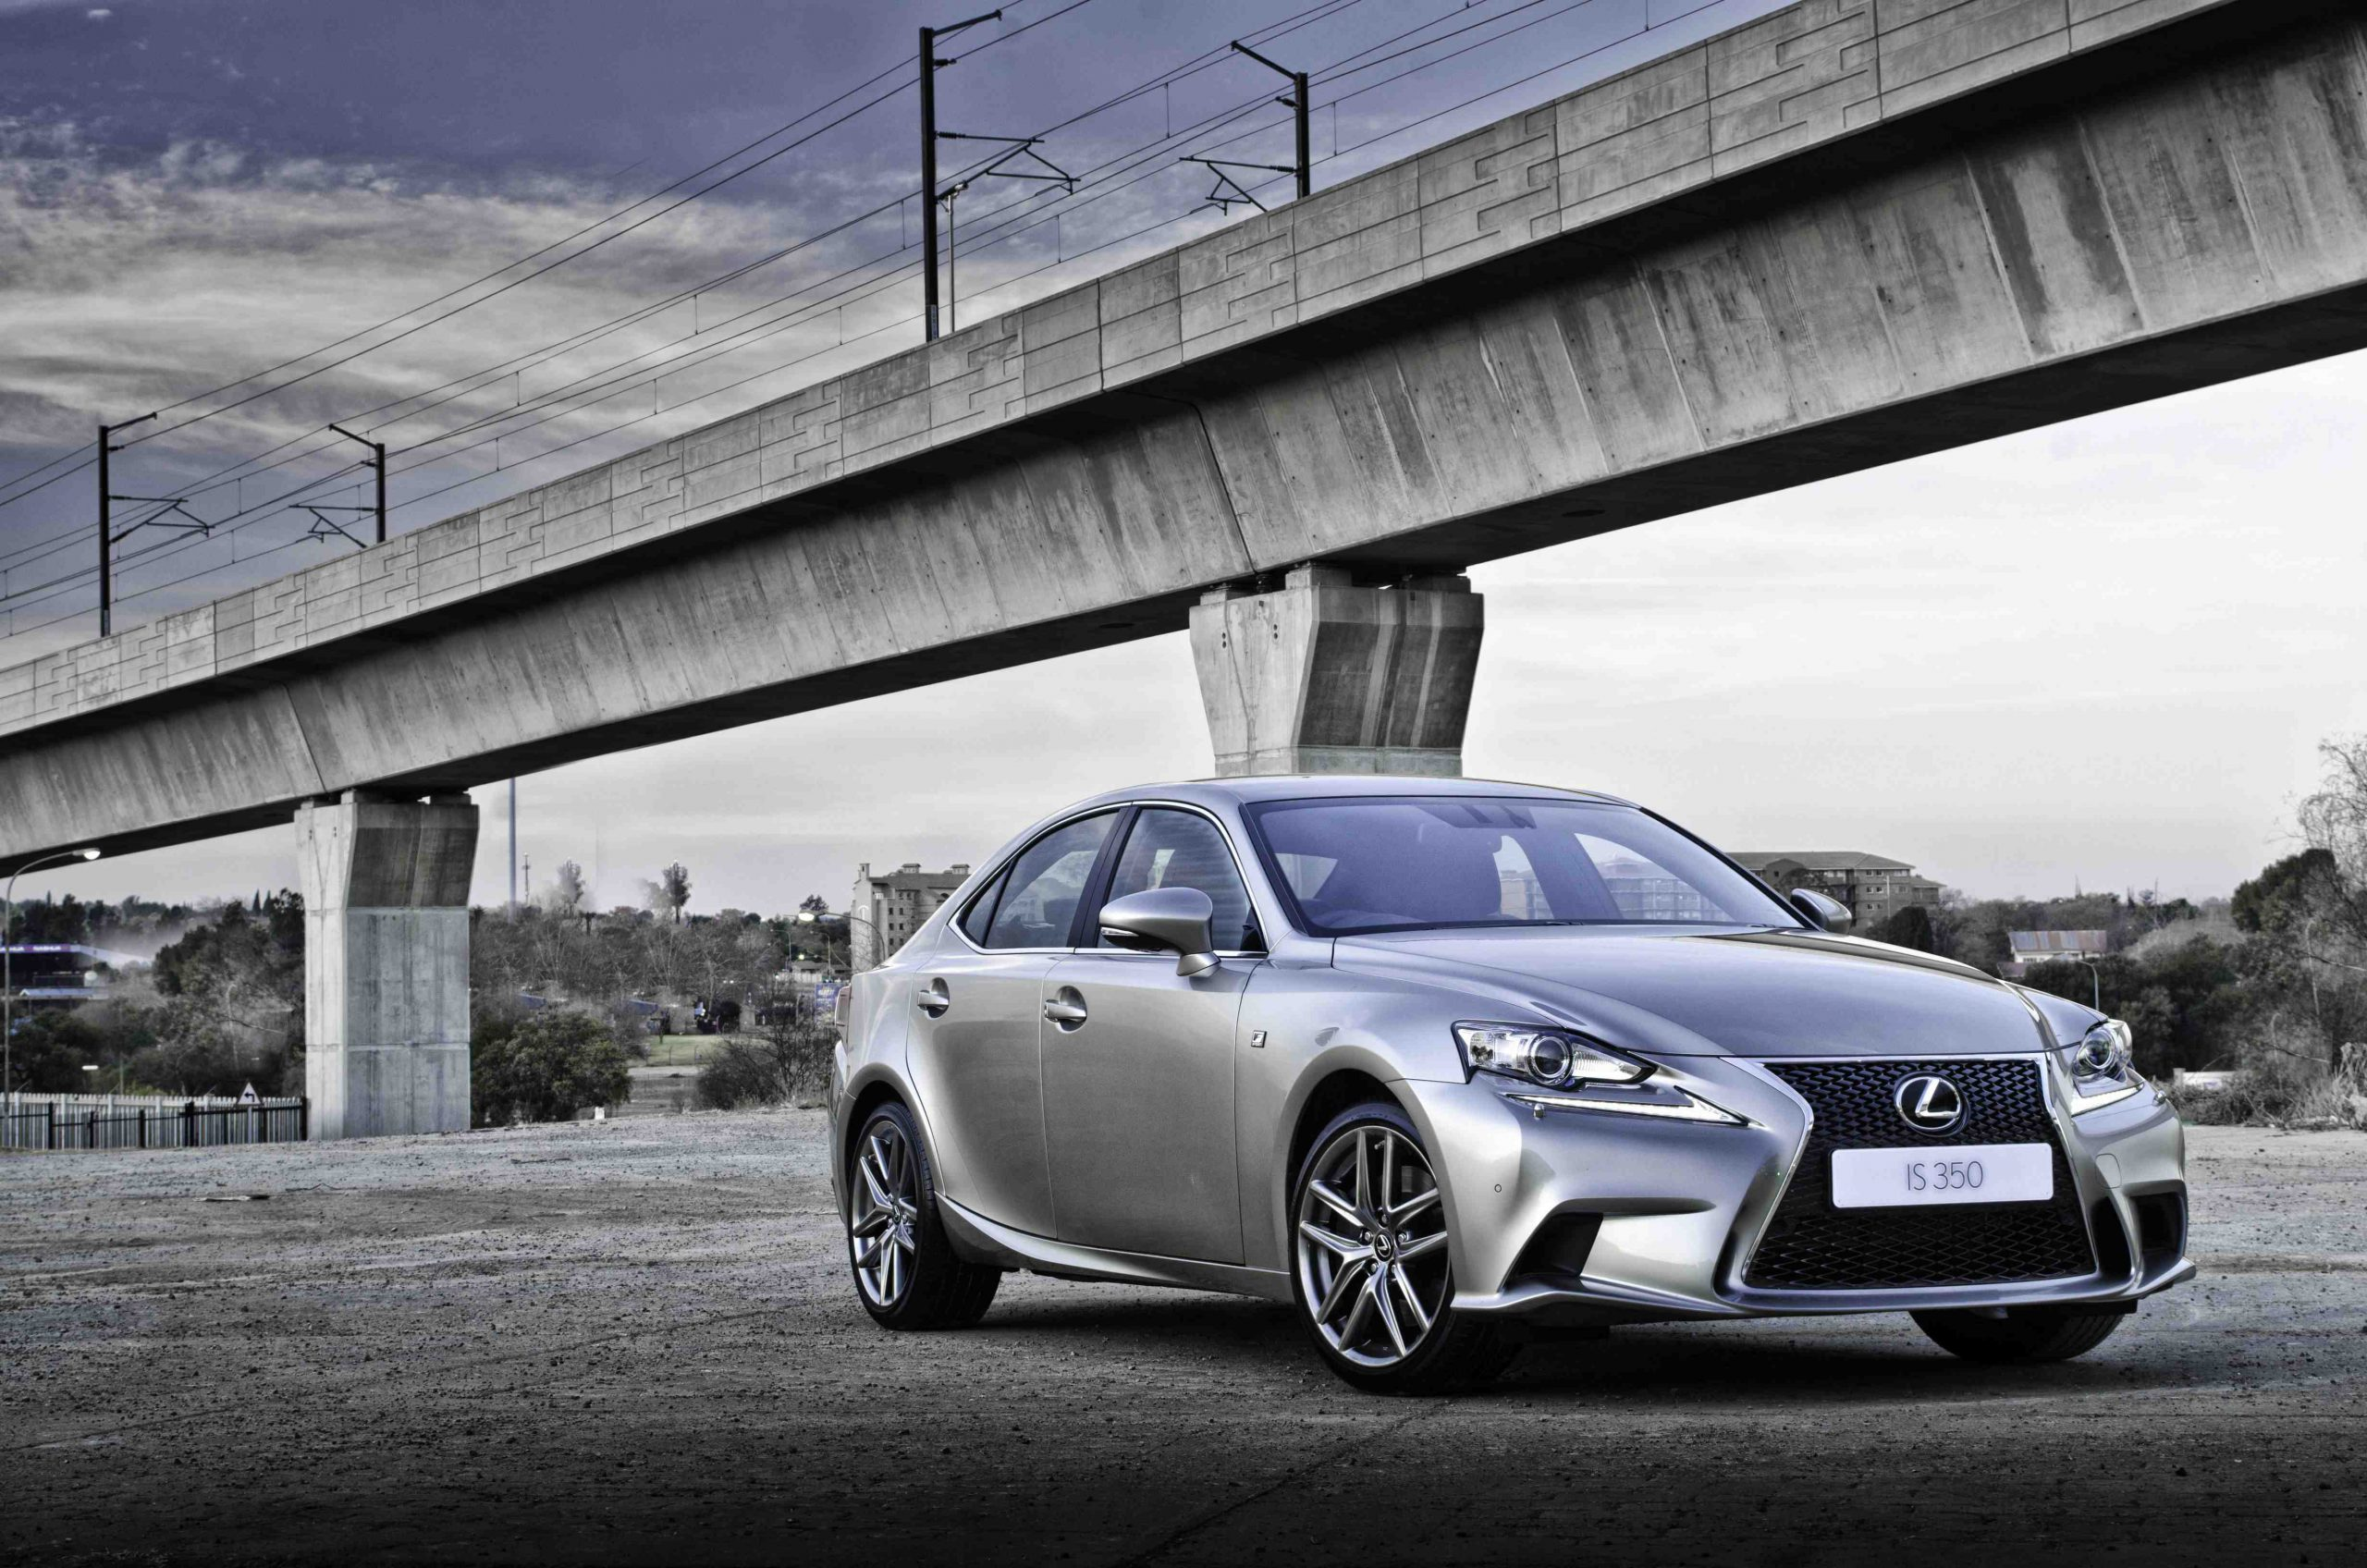 Lexus IS 350 F-Sport (2014): New Car Review